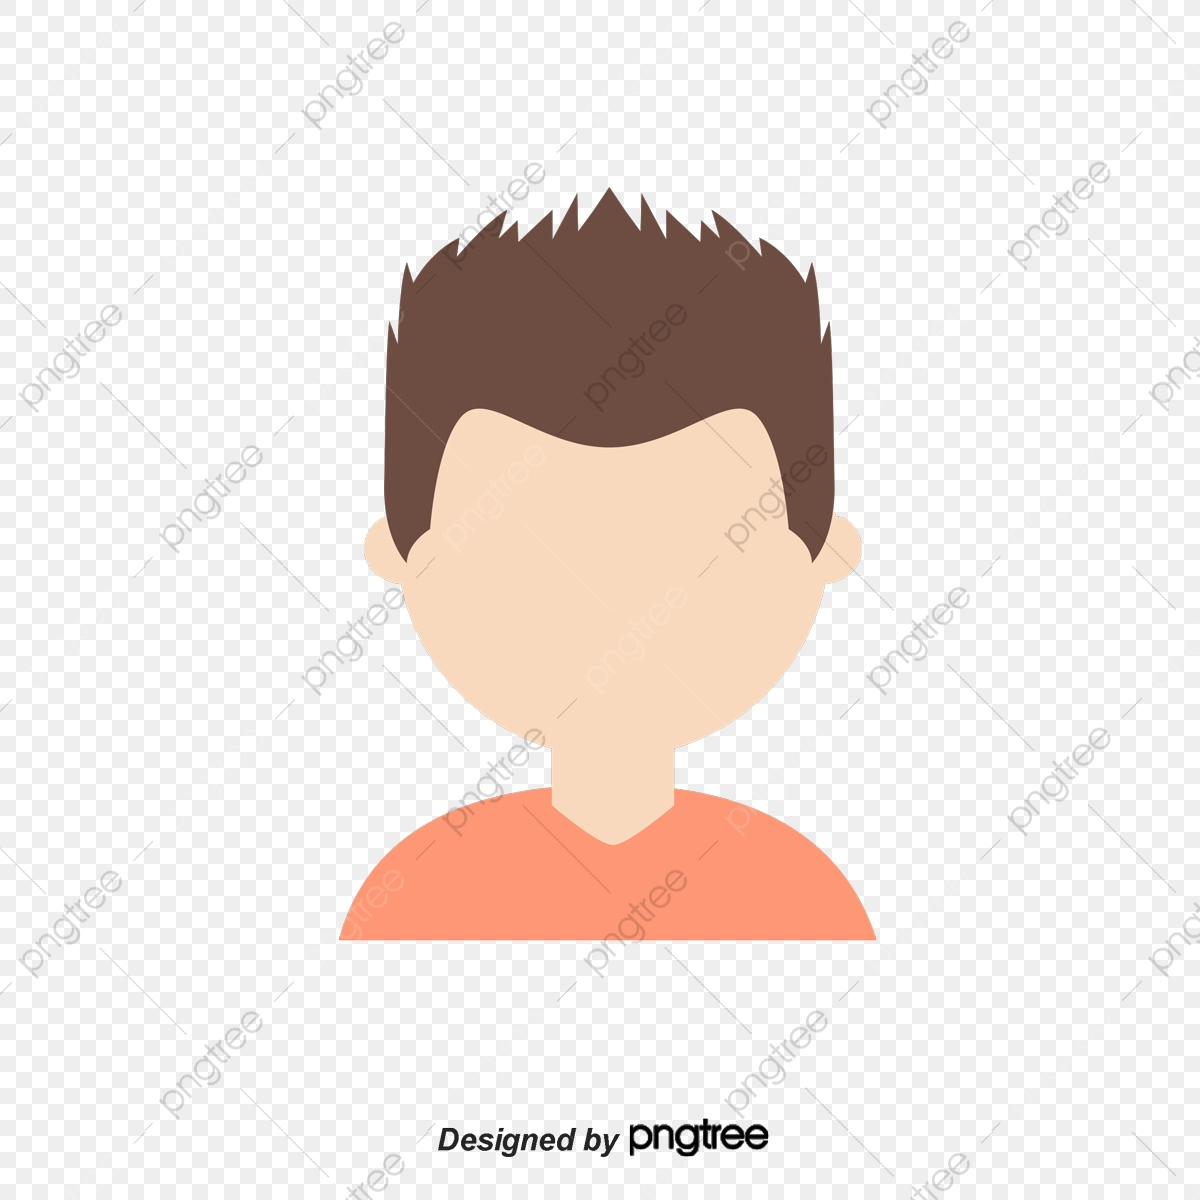 png free Vector avatar student. College clipart cartoon png